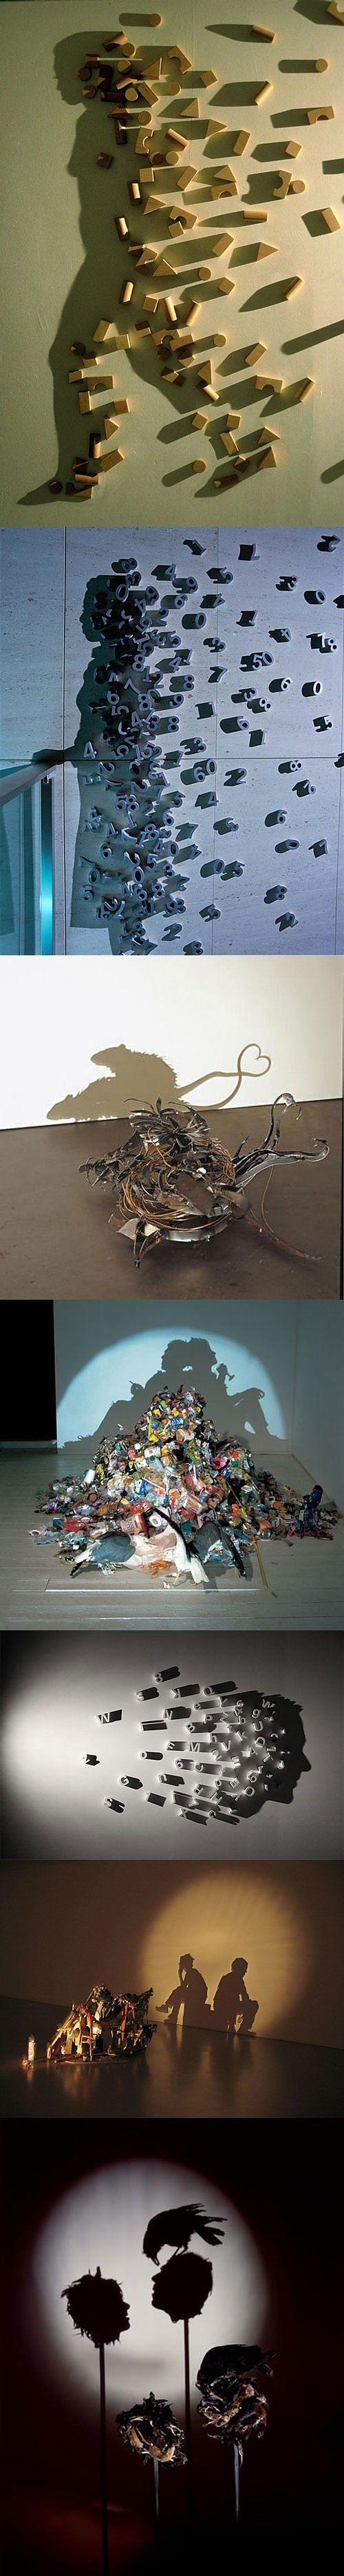 Mind-blowing shadow art.